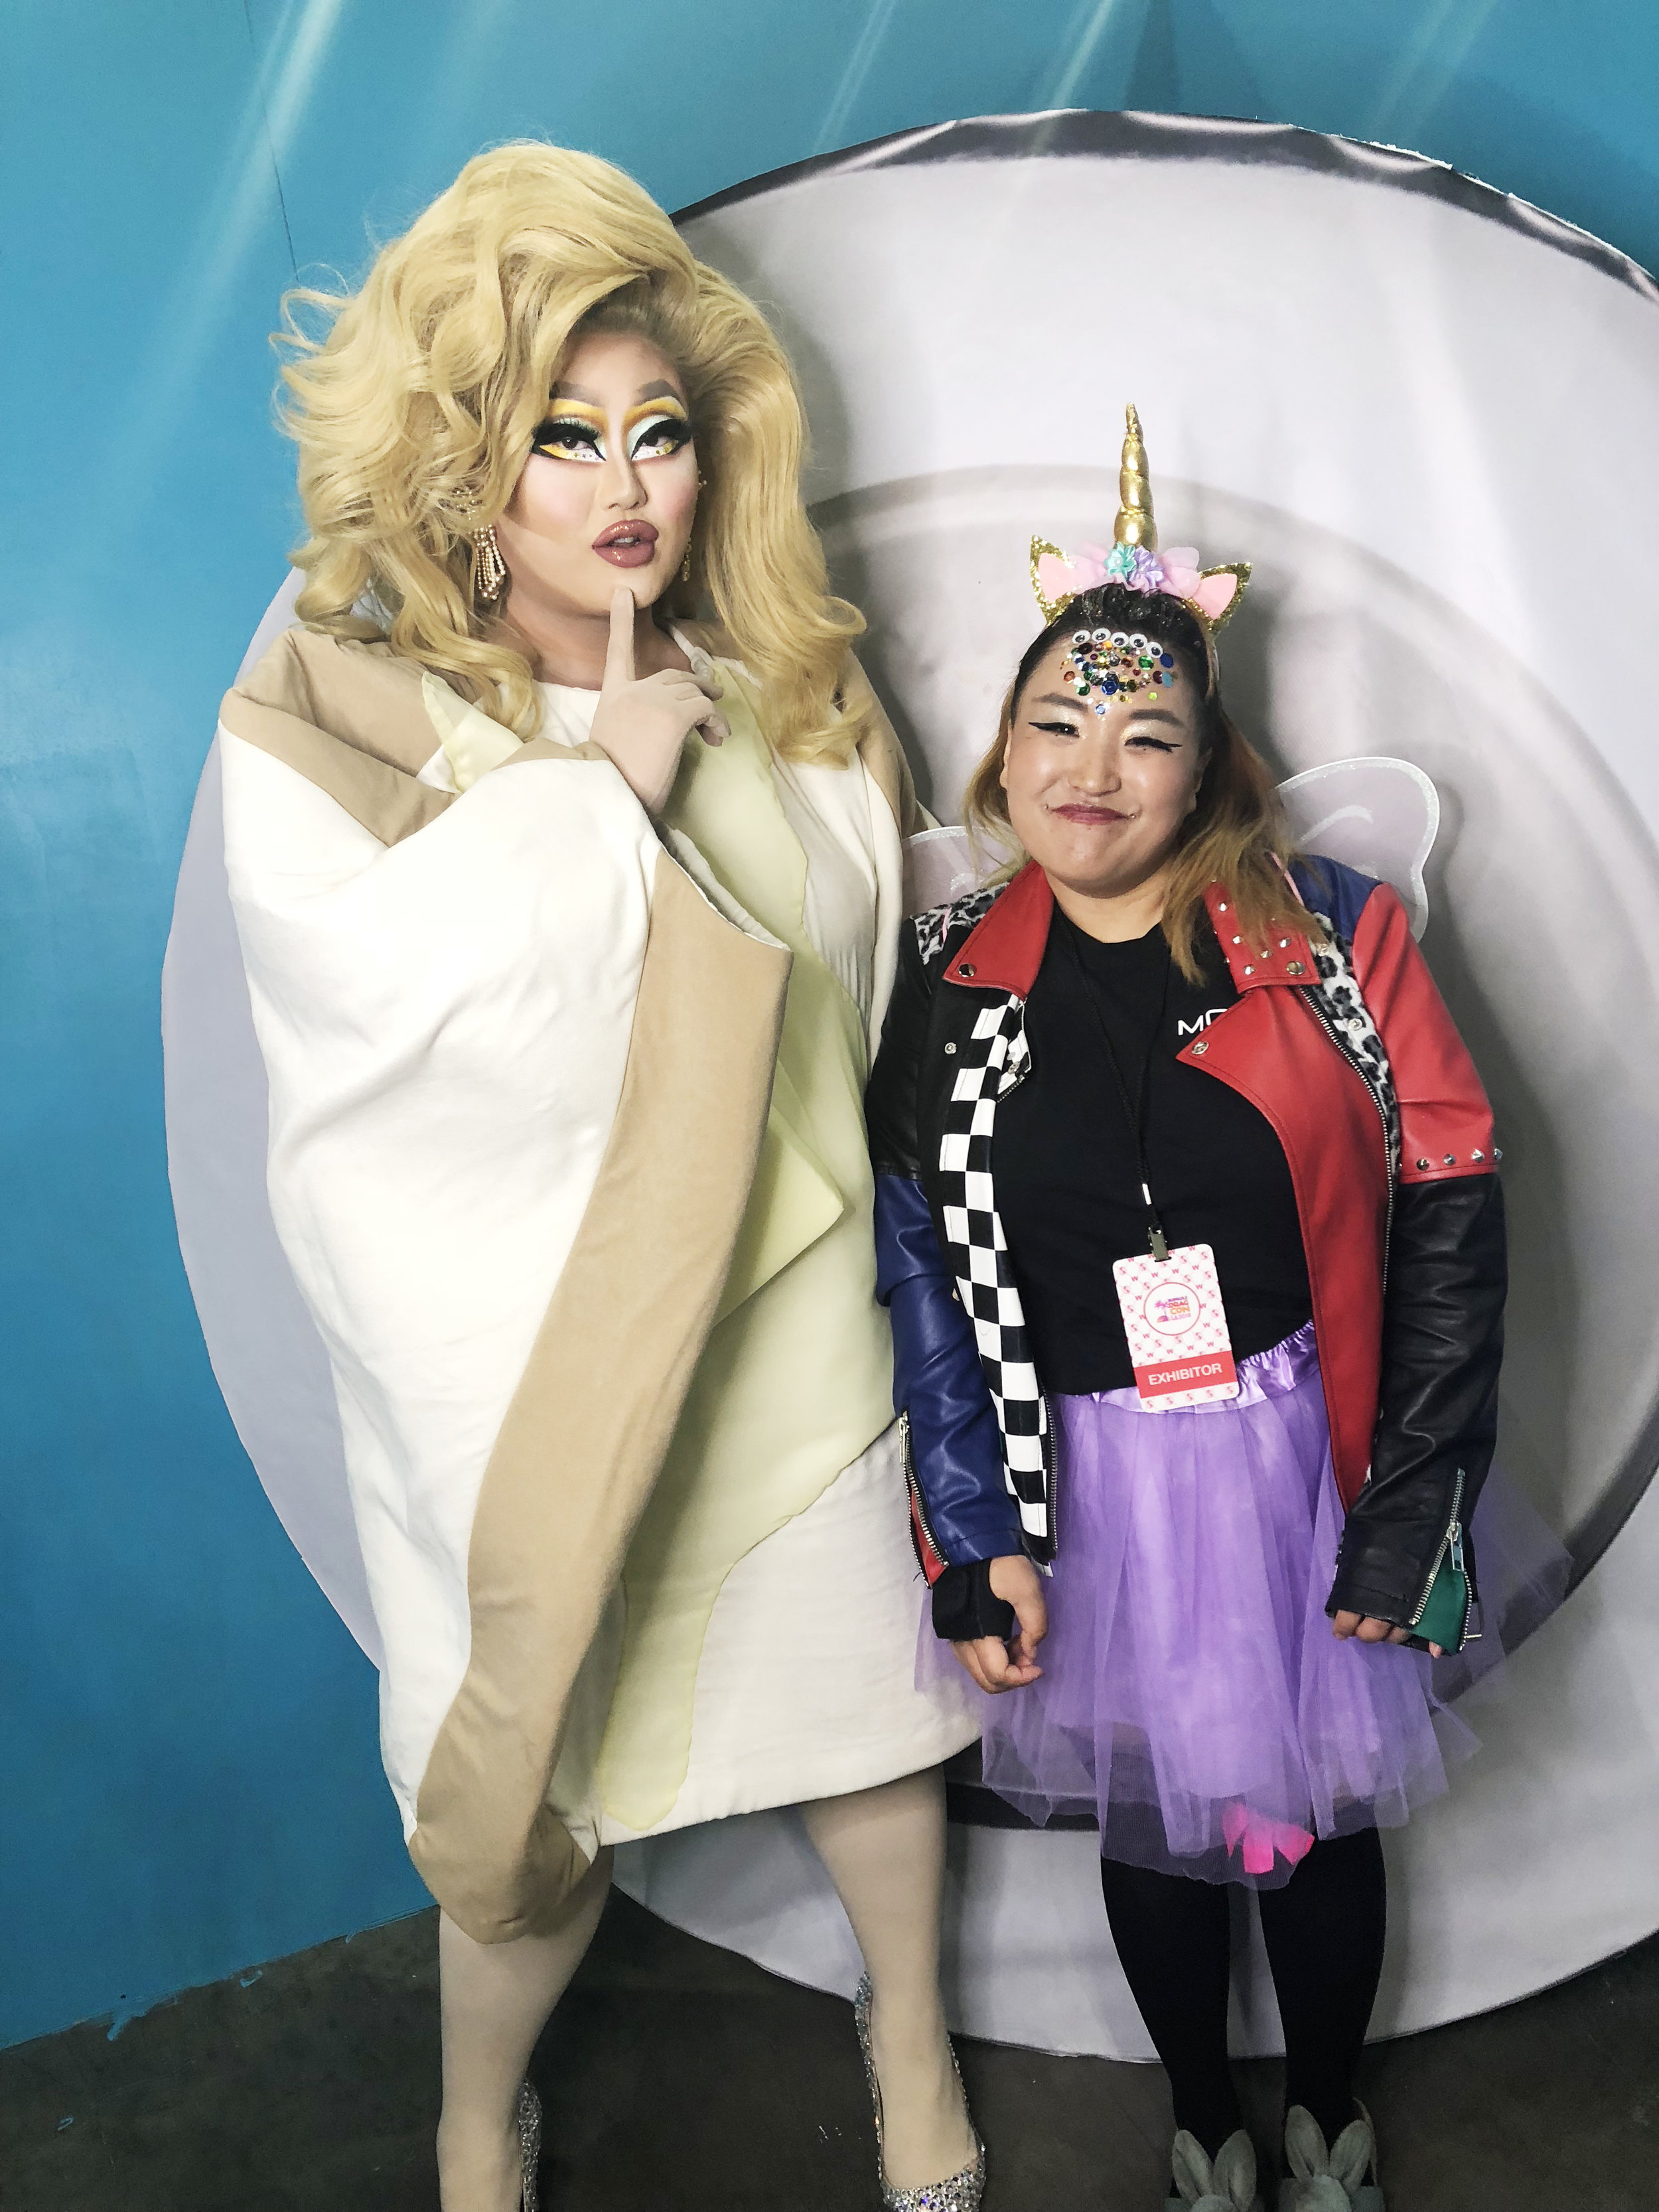 """Luna, Graphic Designer, at MOIRA, met her Drag Queen hero Kim Chi. """"Meeting her was AMAZING! She is so pretty and nice. Her makeup was flawless. The reason why I love Kim Chi is because I feel that she was on of the first Drag Queens on the show to have super unique and creative looks. She's quiet but funny at the same time so she is someone I feel like I relate to."""""""